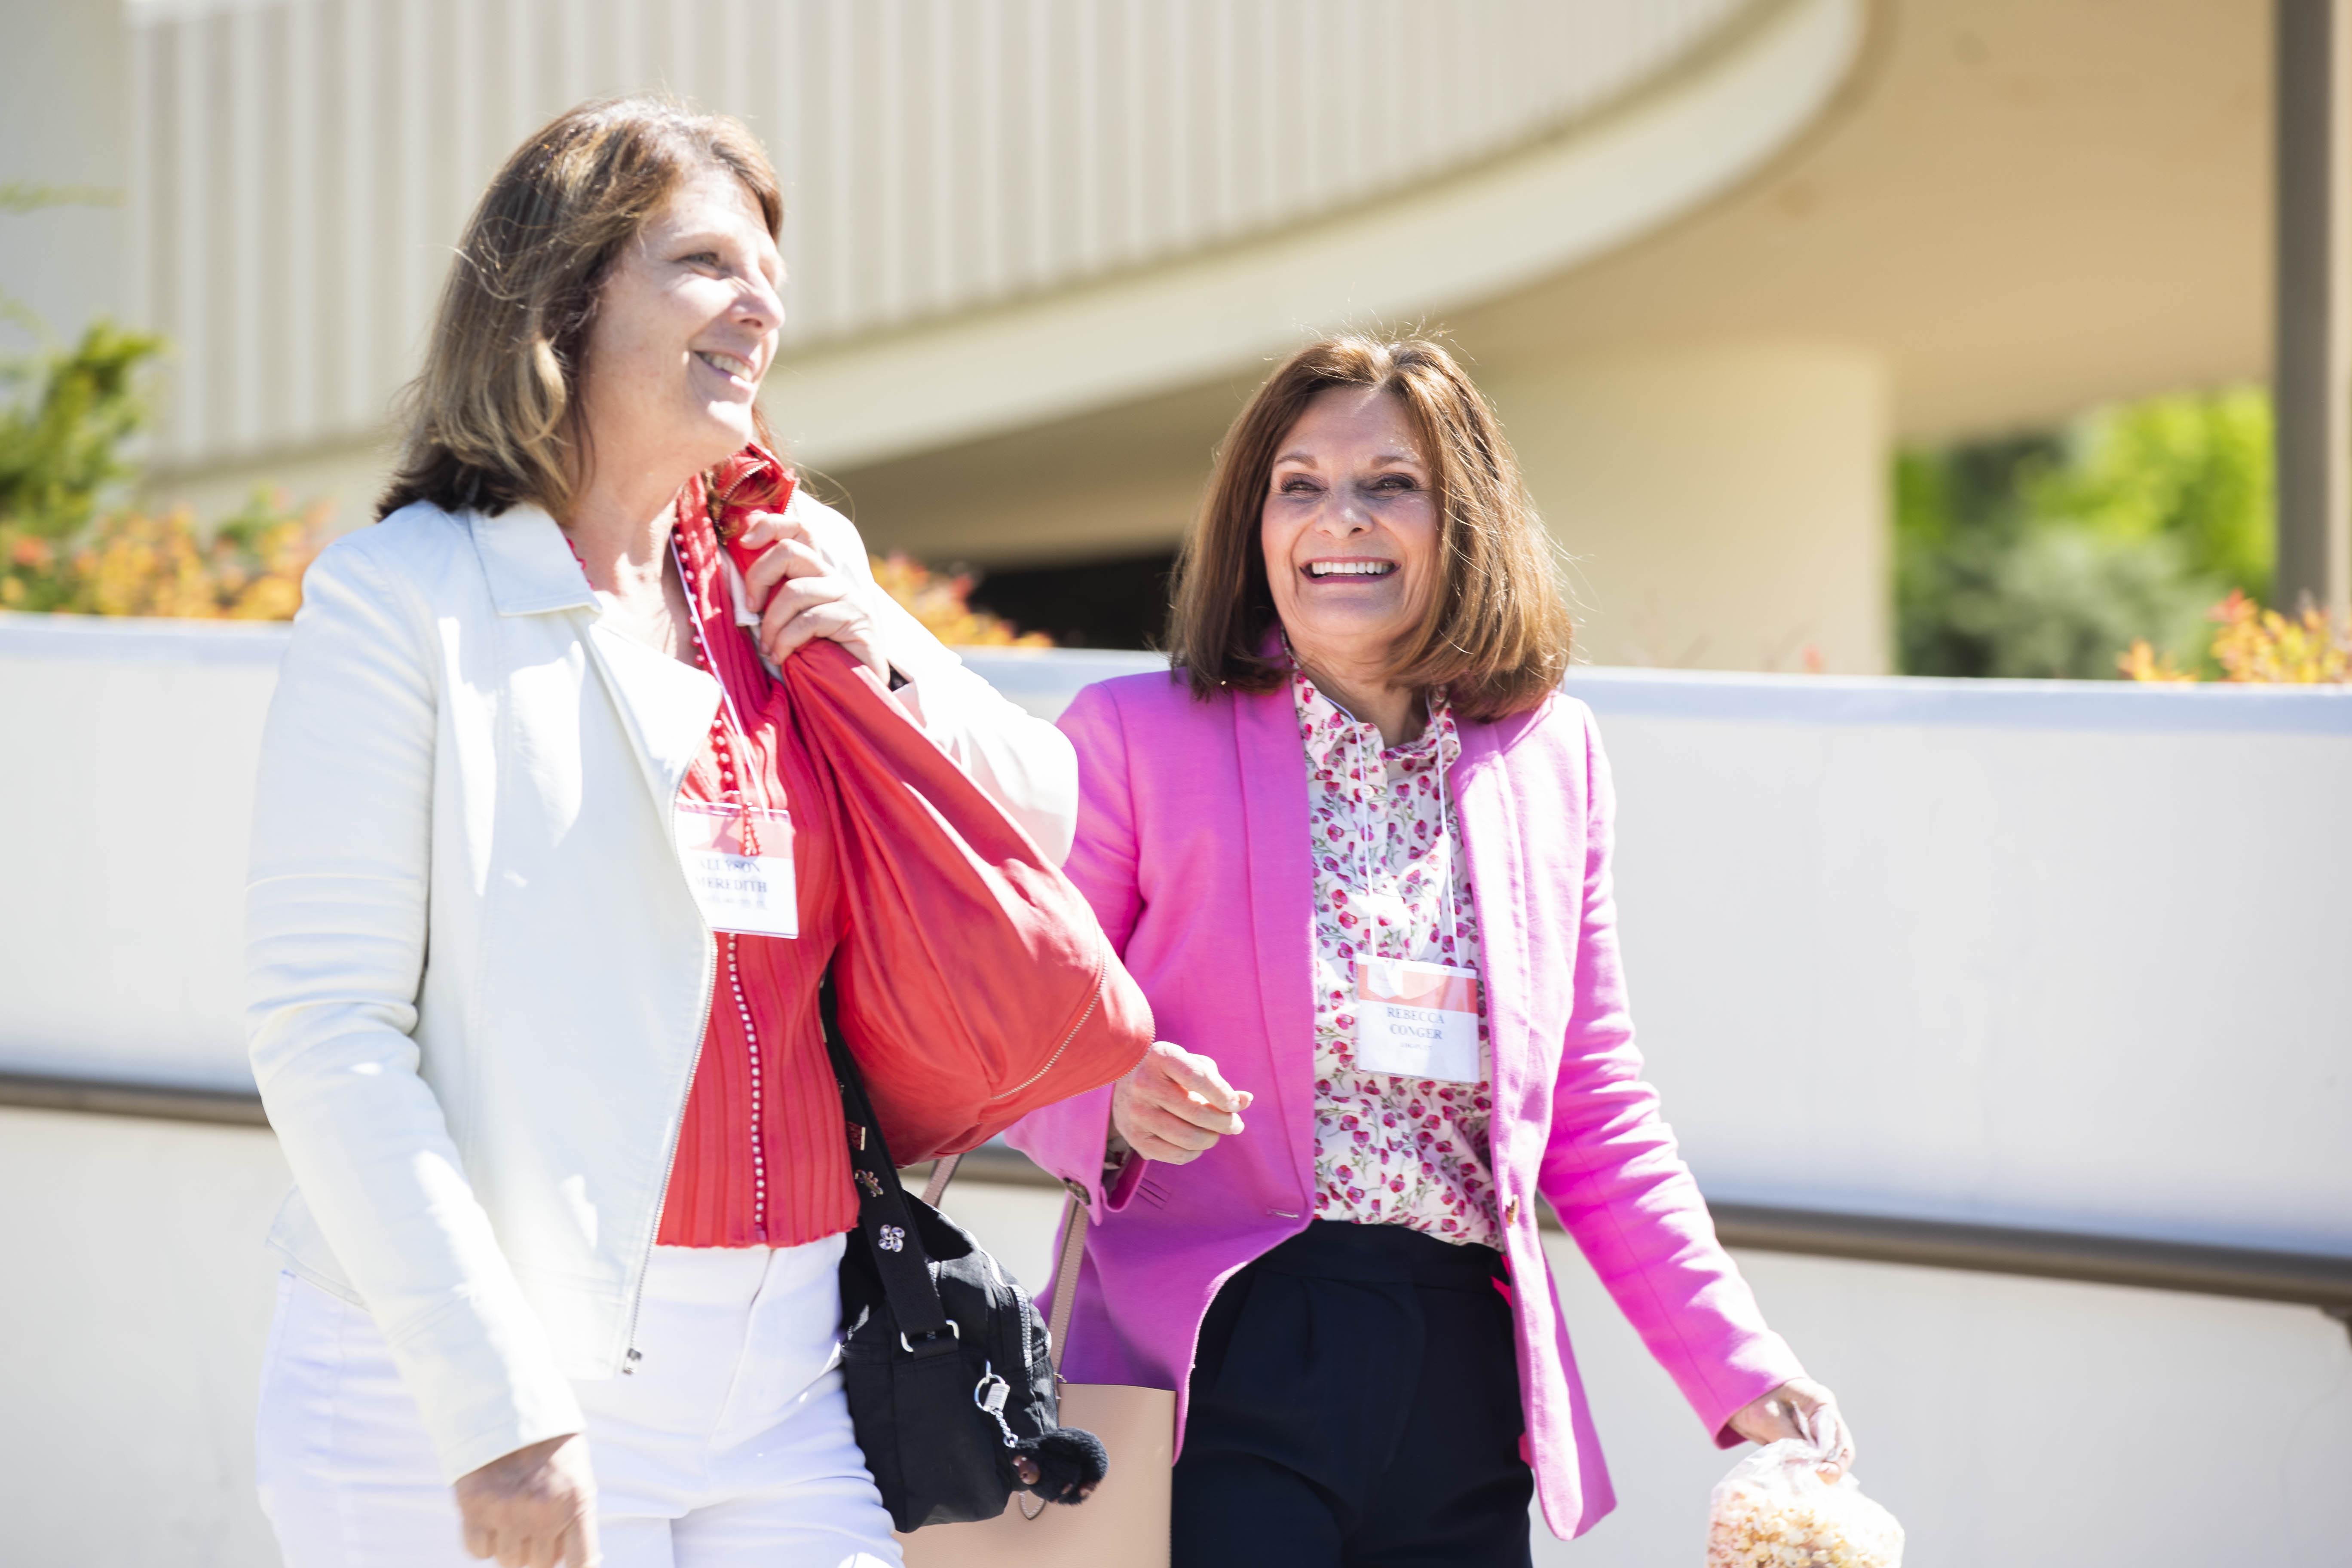 Two women exit the Marriott Center as they head to classes for the 2019 BYU Women's Conference on May 2.